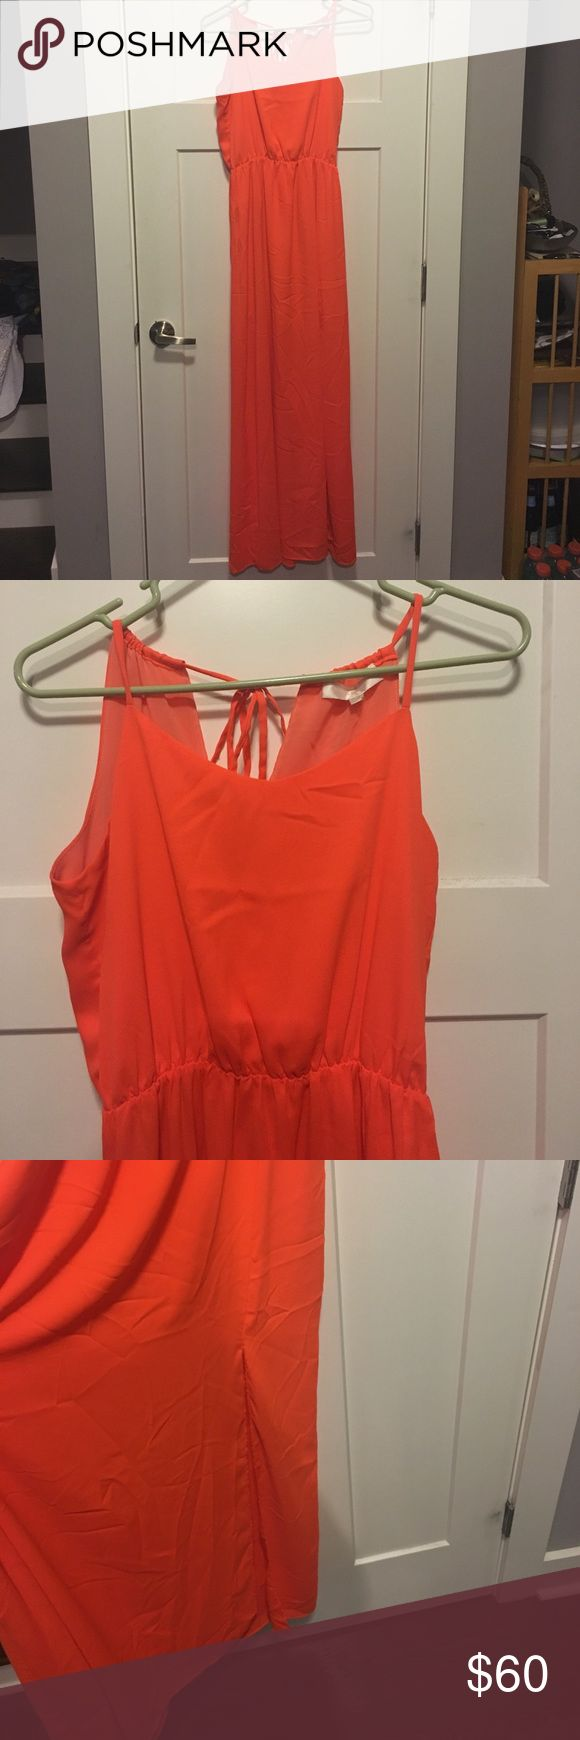 Bright orange maxi dress MM Couture Size small. Bright and fun maxi with a small slight on the left leg. Worn only a few times. Wrinkled from storage. Adjustable in the back with tie. MM Couture Dresses Maxi